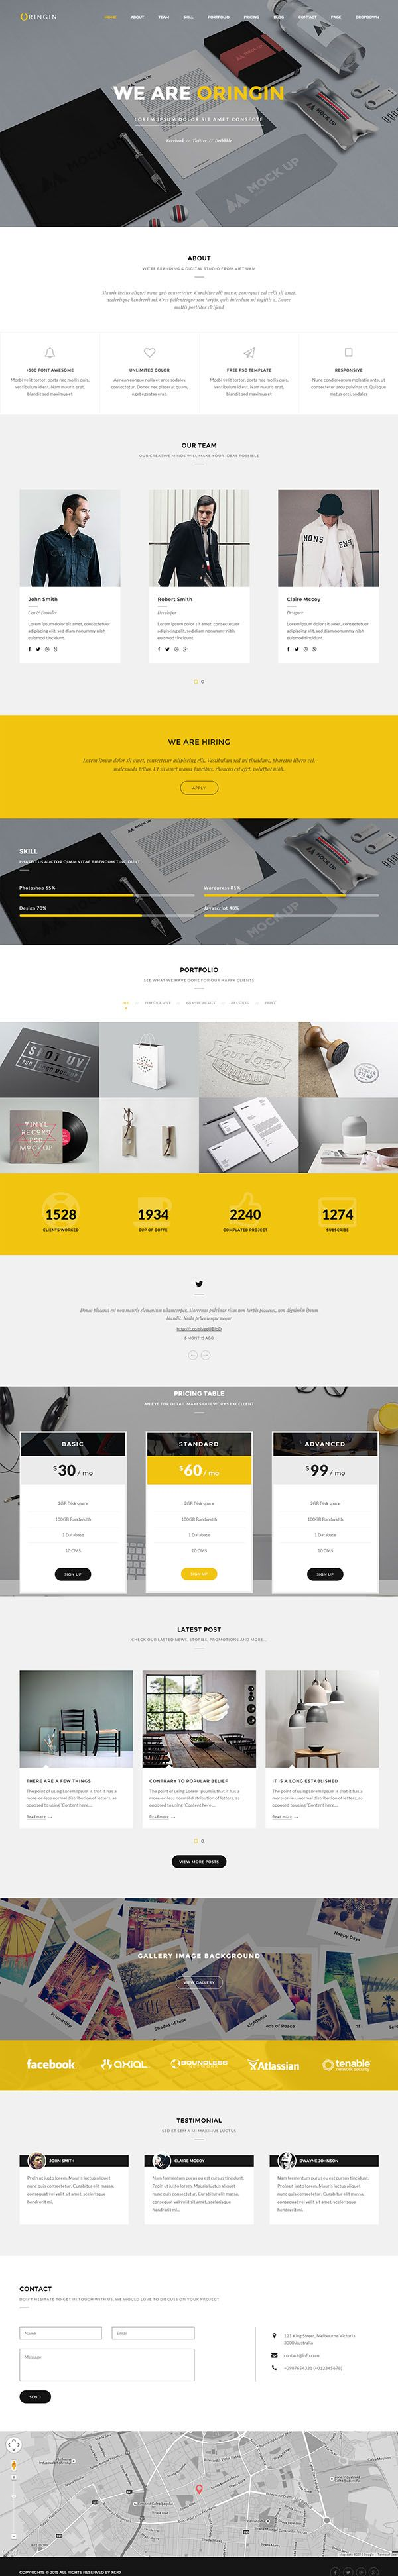 15 New Responsive Html5 Css3 Website Templates Drupal Templates Web Design Inspiration